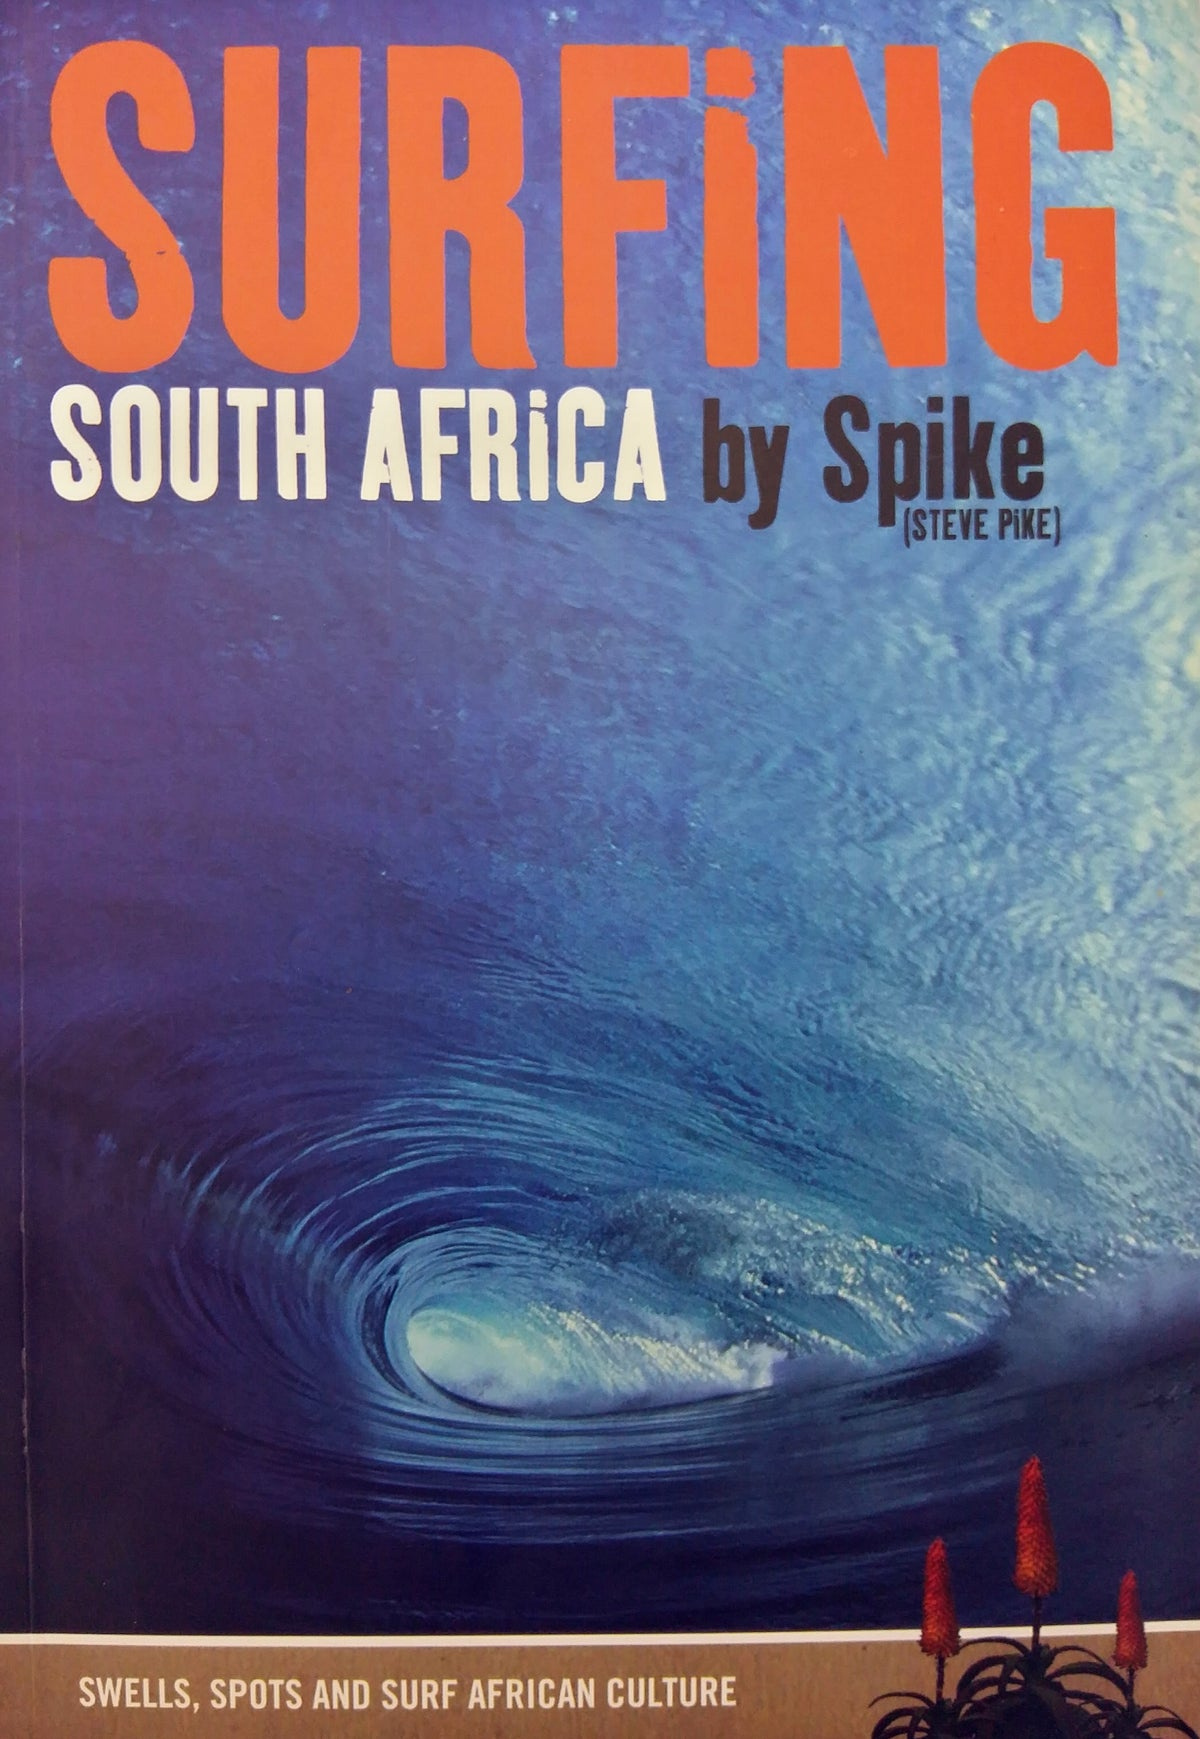 Surfing South Africa by Spike (Steve Pike)